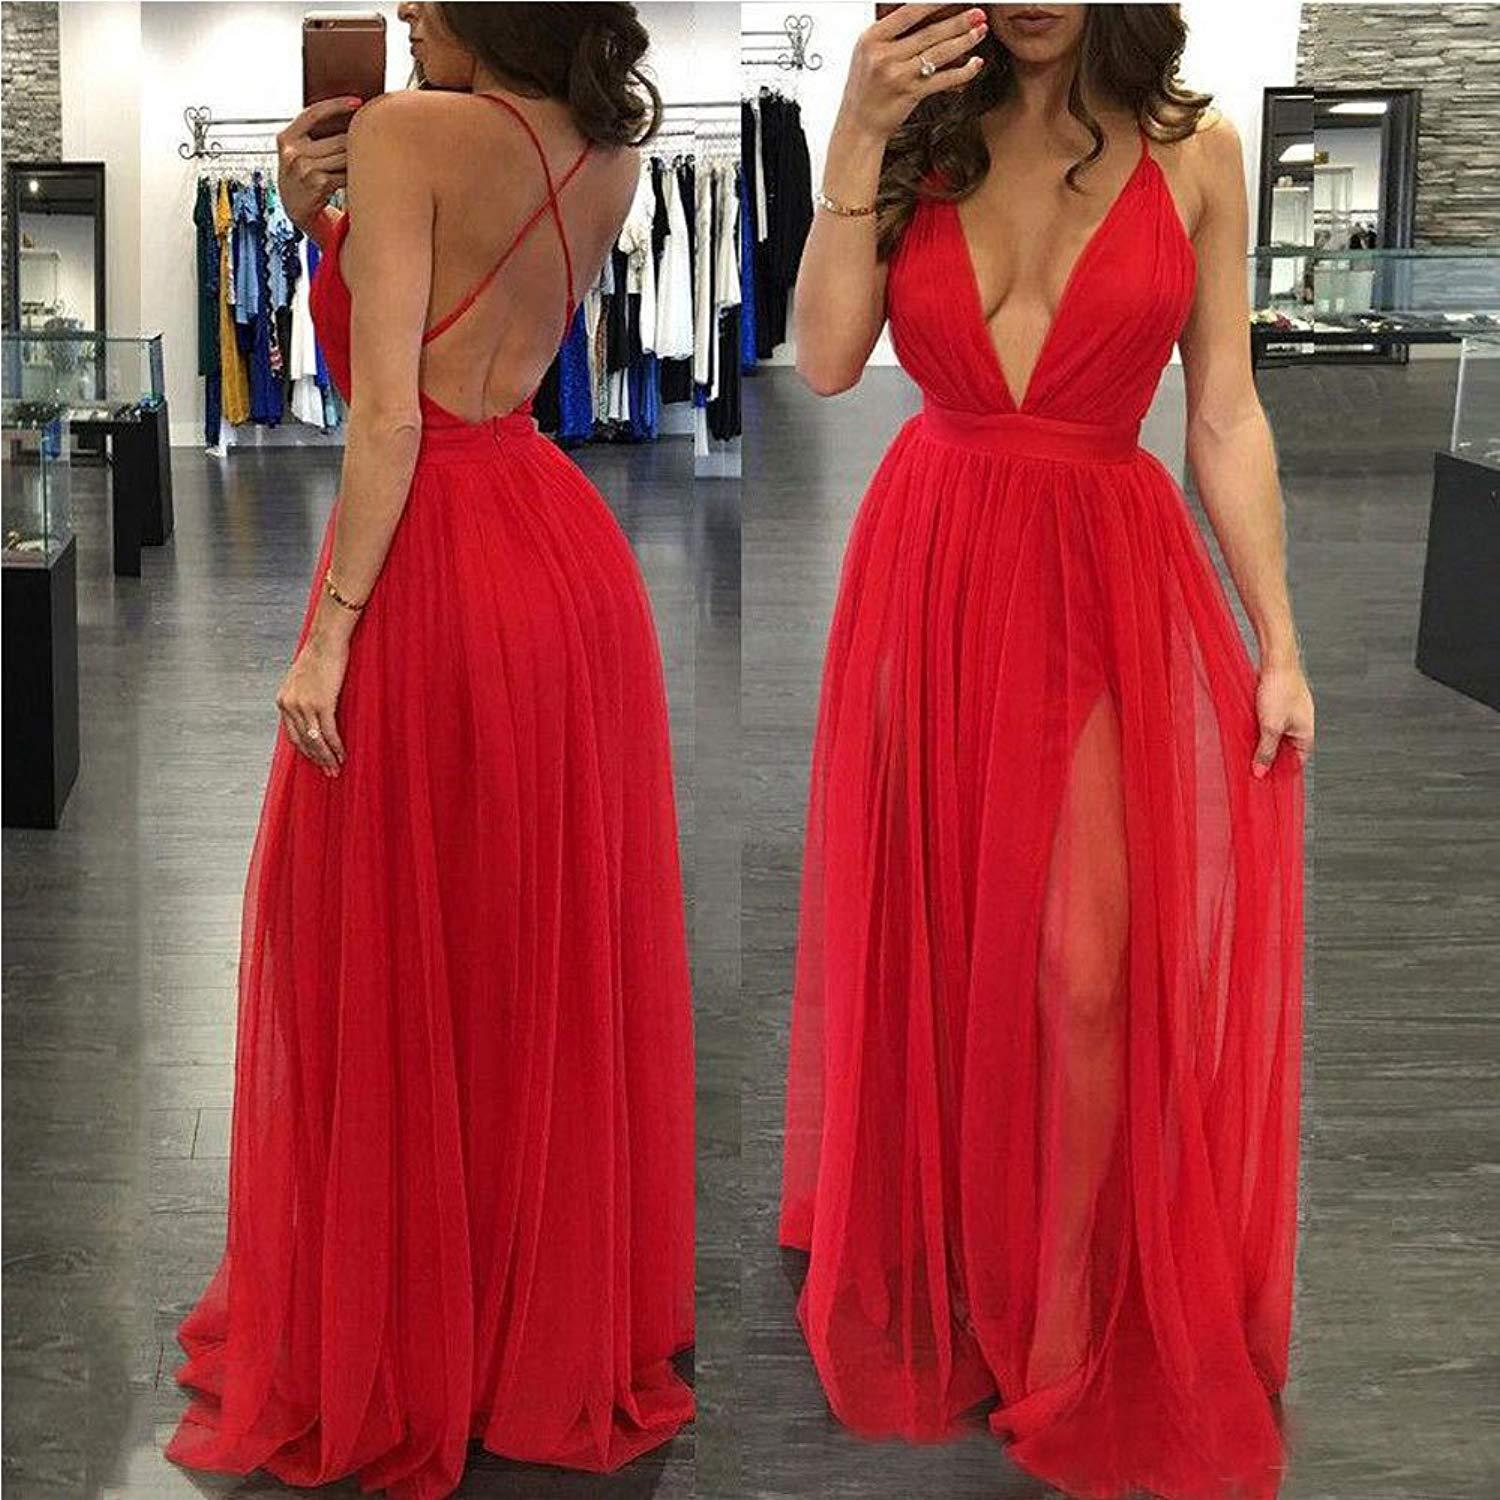 Low-Cut Prom Dresses with Slit